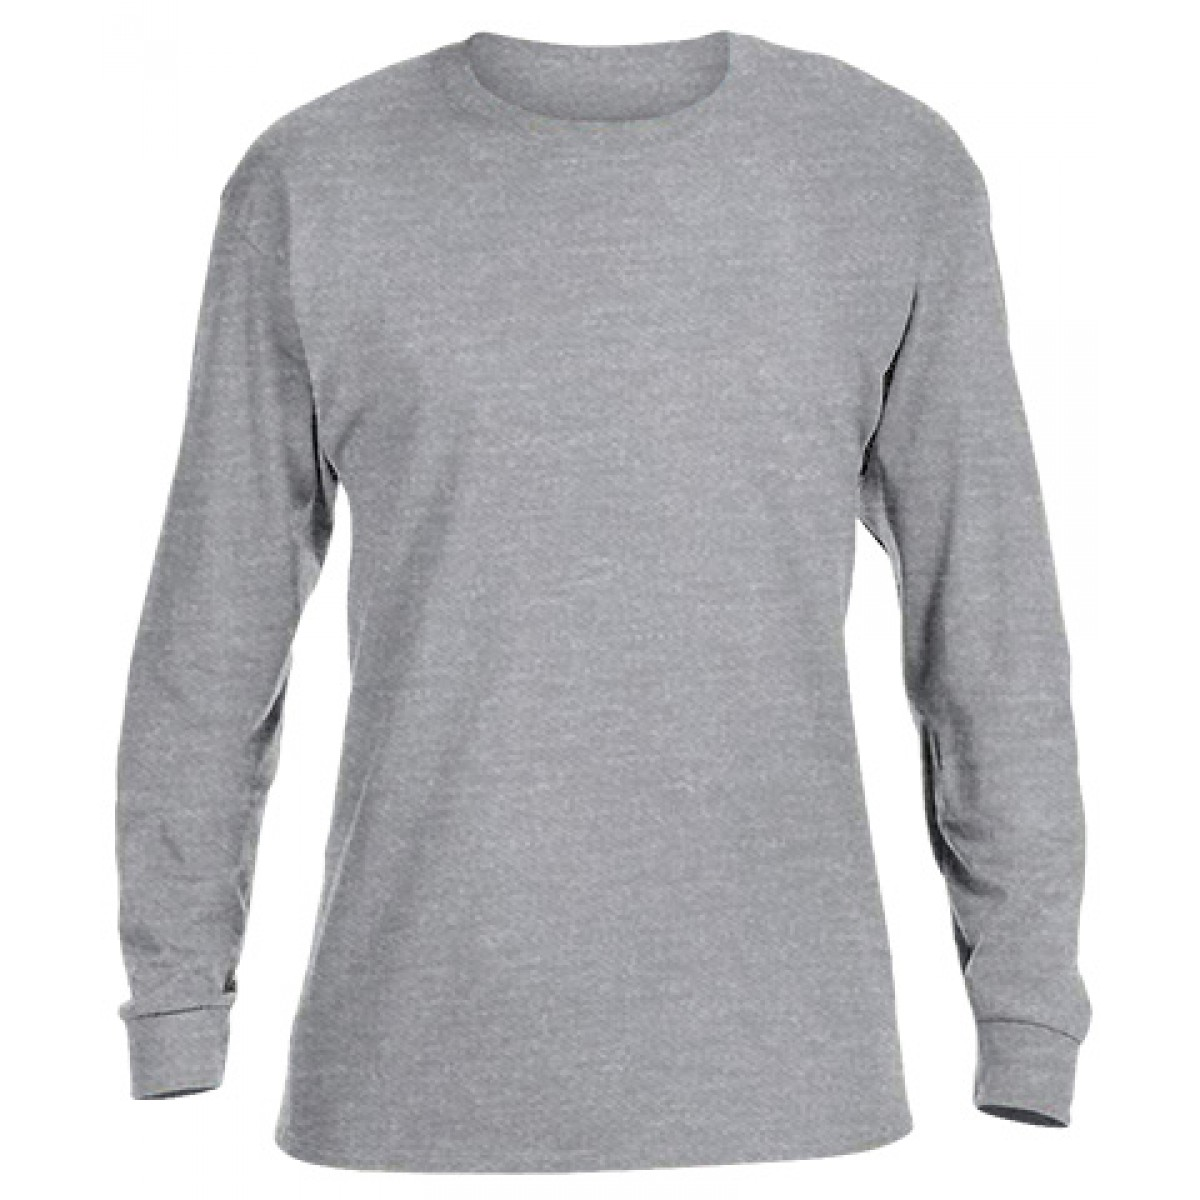 Basic Long Sleeve Crew Neck -Ash Gray-YS